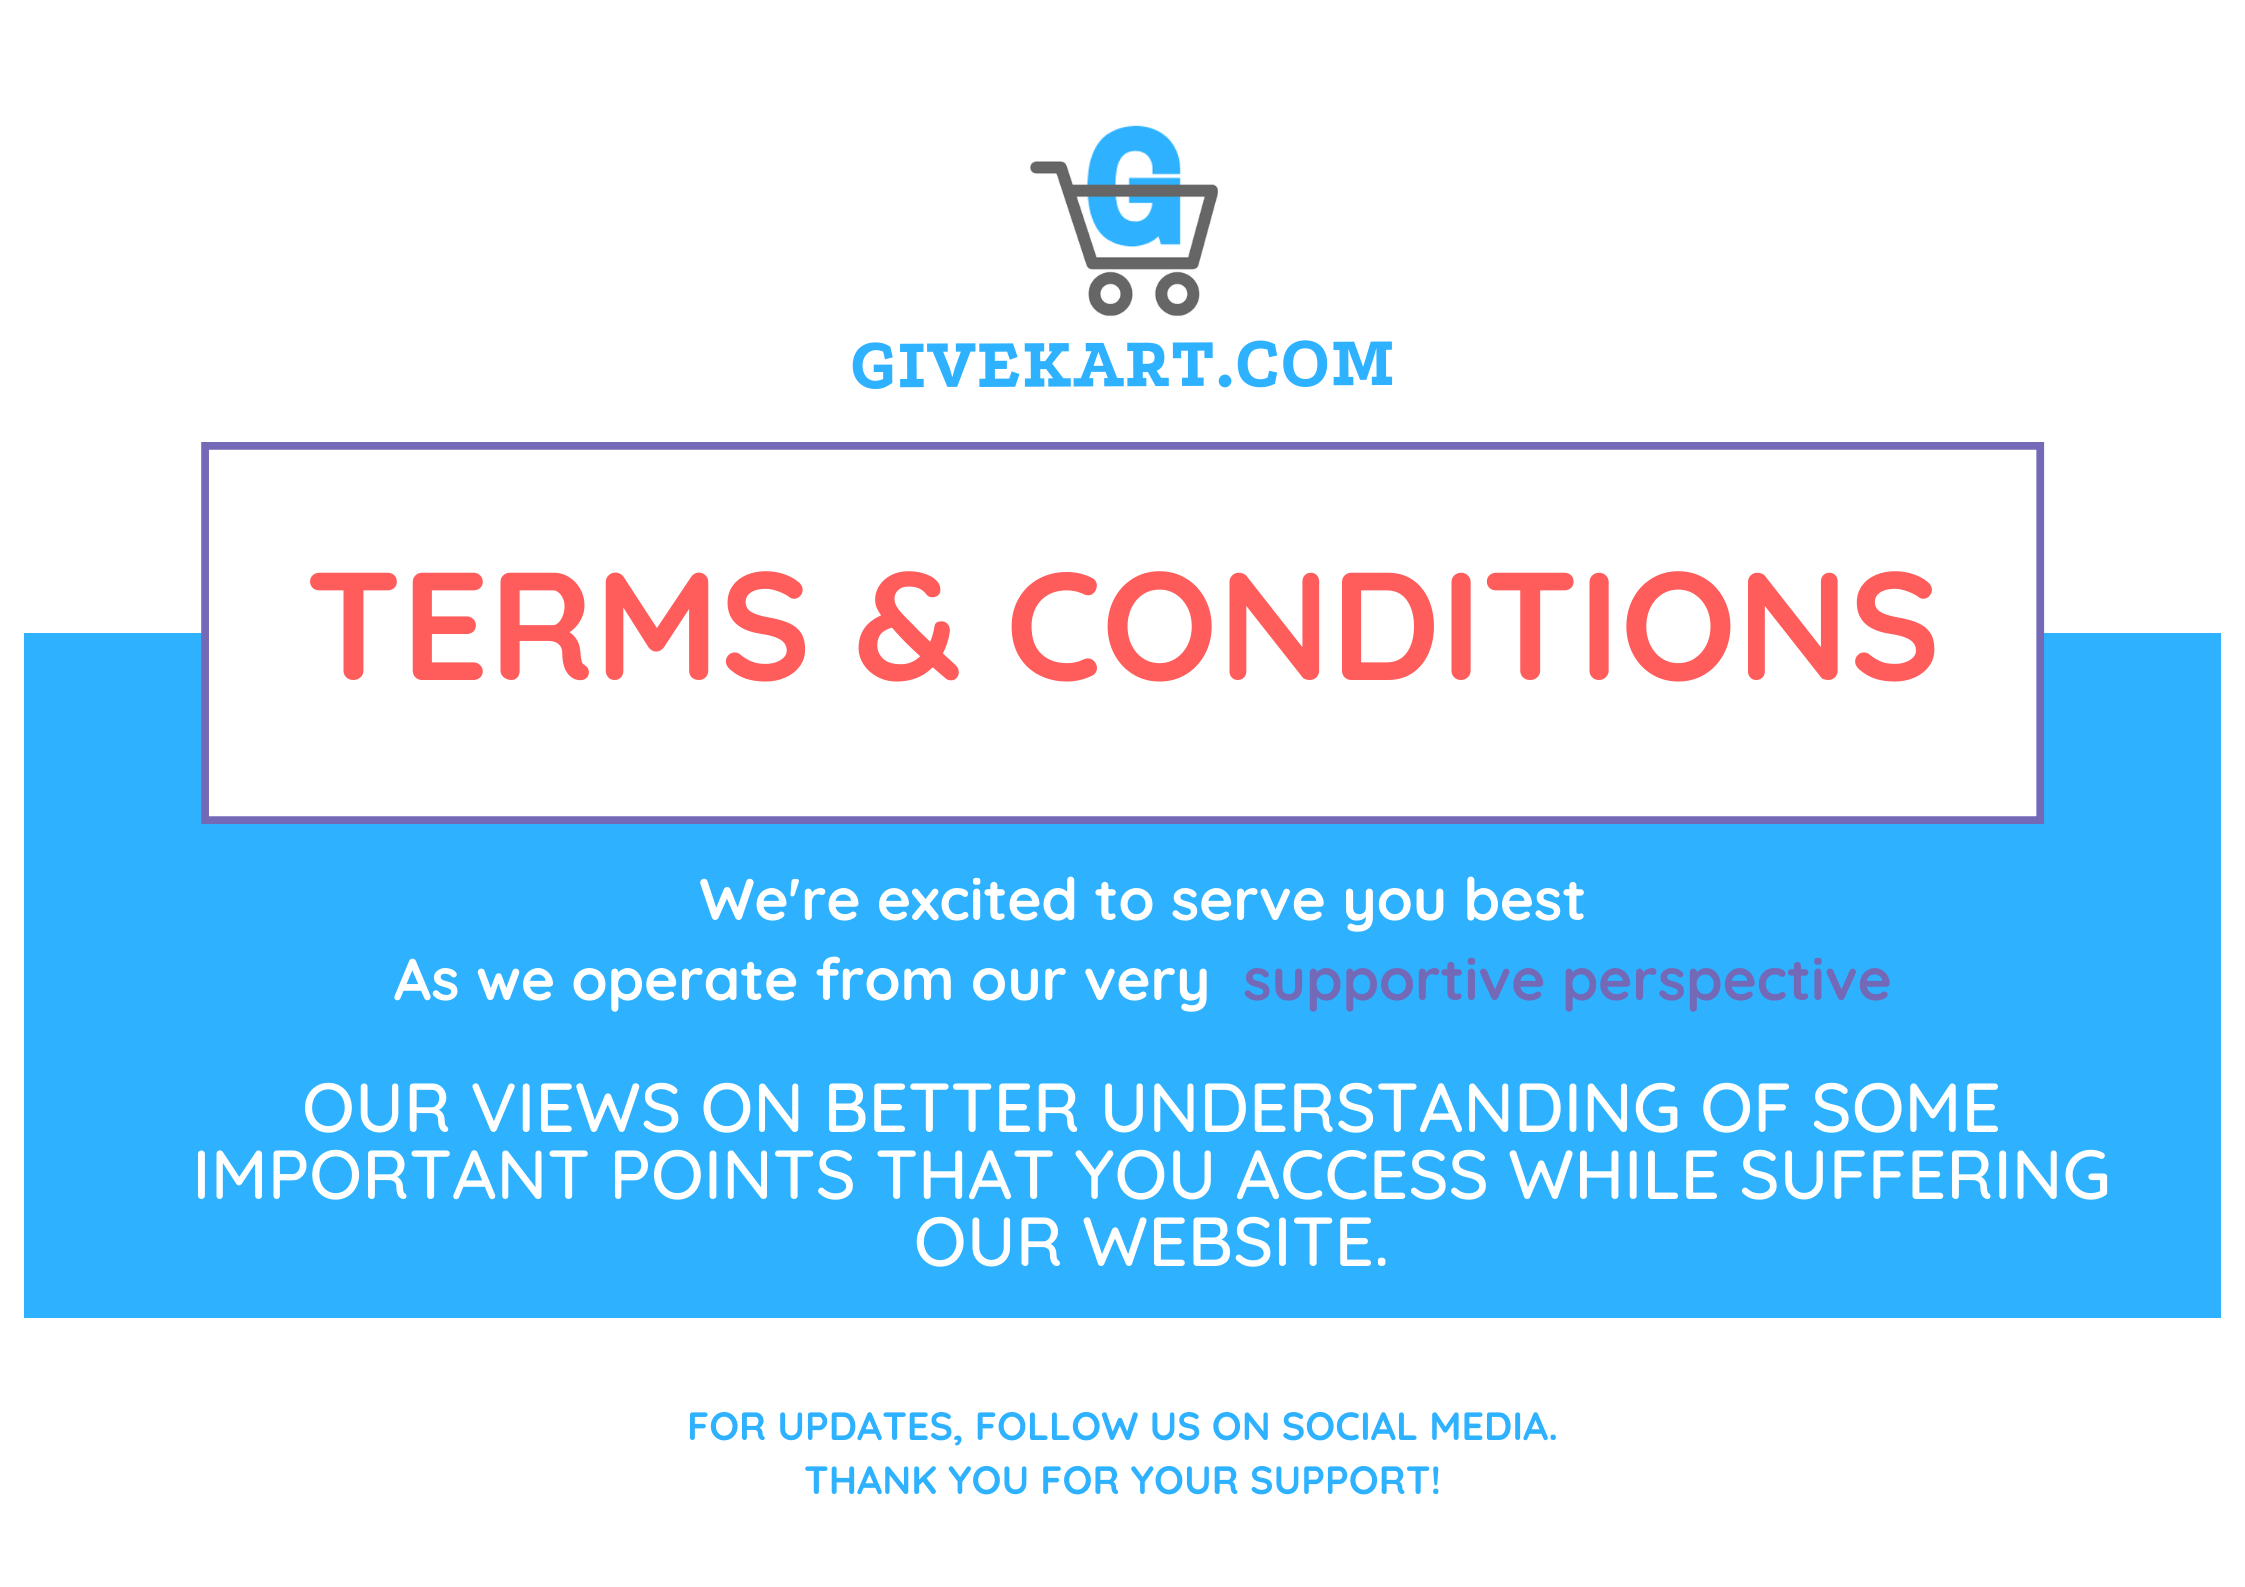 Givekart   Terms & Conditions   Best Online Shopping   Shipping 24 x 7